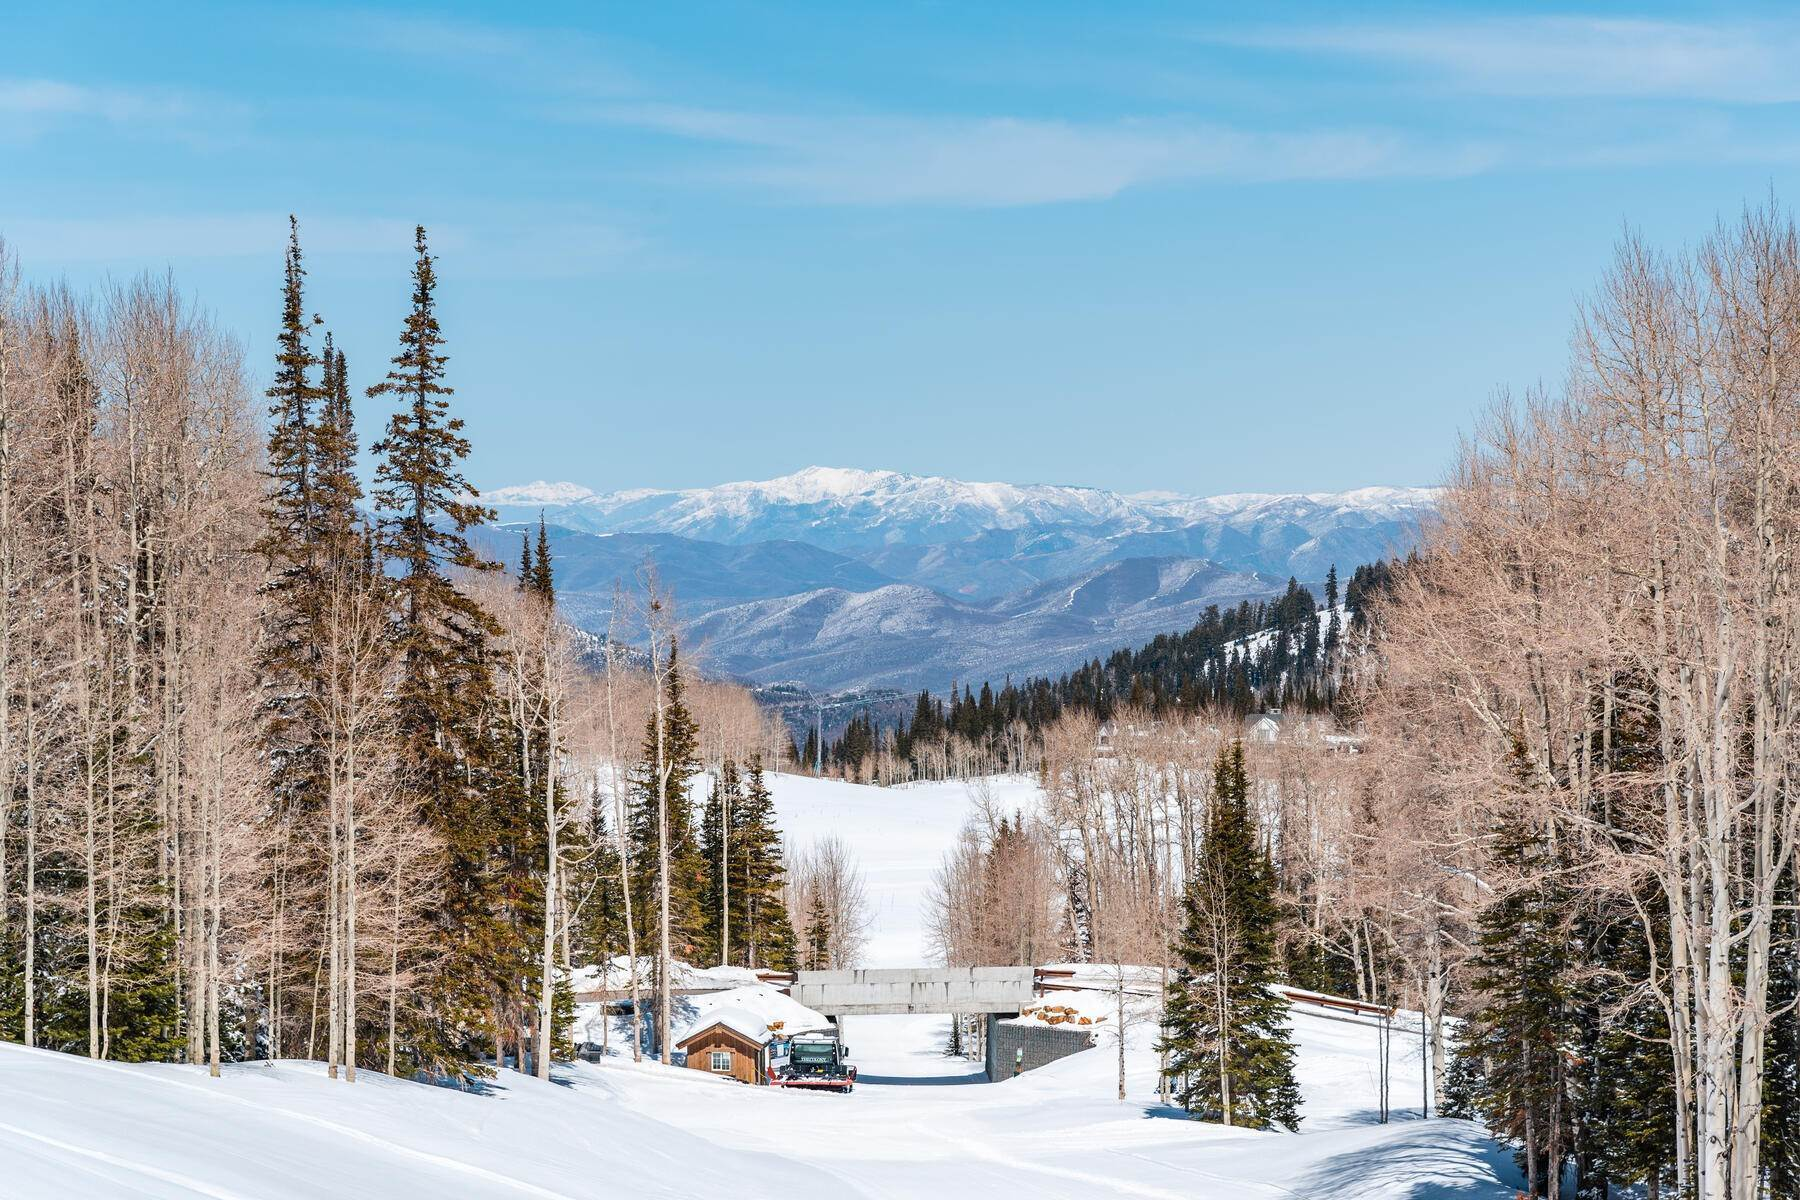 Land for Sale at Rare Park City Residential Development Opportunity on 80.51 Acres 331 White Pine Canyon Rd, Park City, Utah, 84060 United States